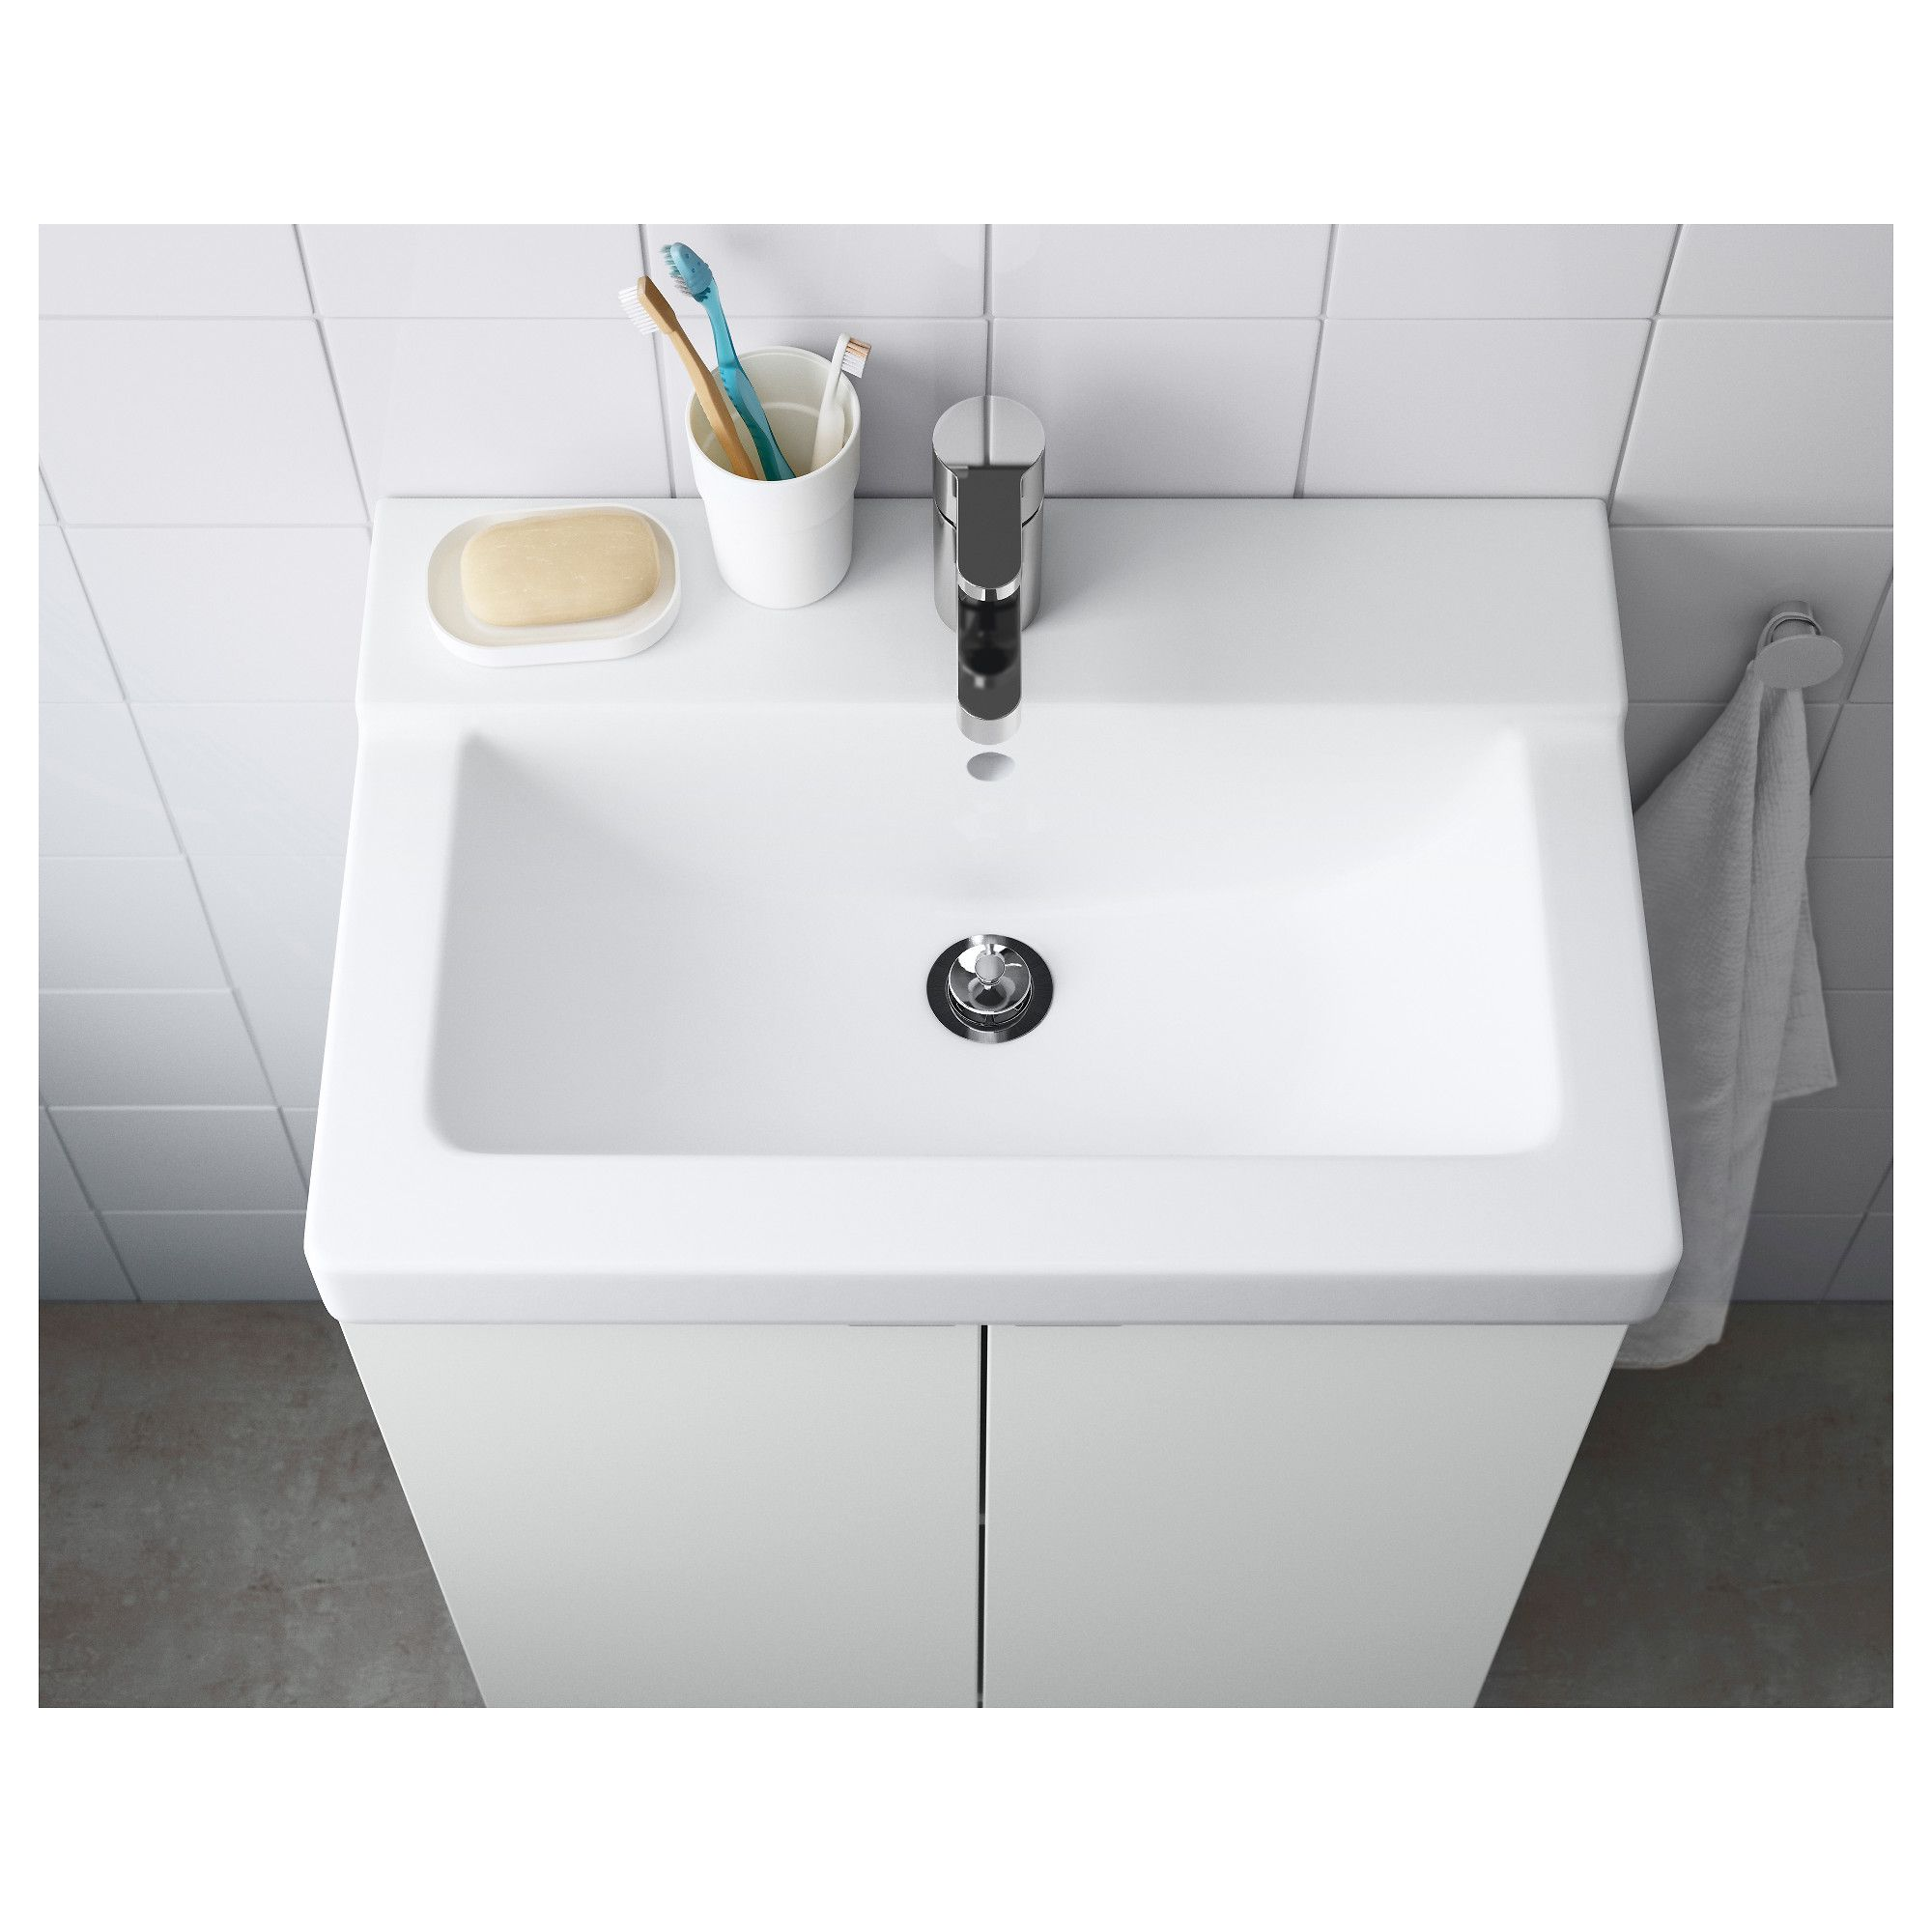 Surprising Furniture And Home Furnishings Products Bathroom Sink Best Image Libraries Barepthycampuscom